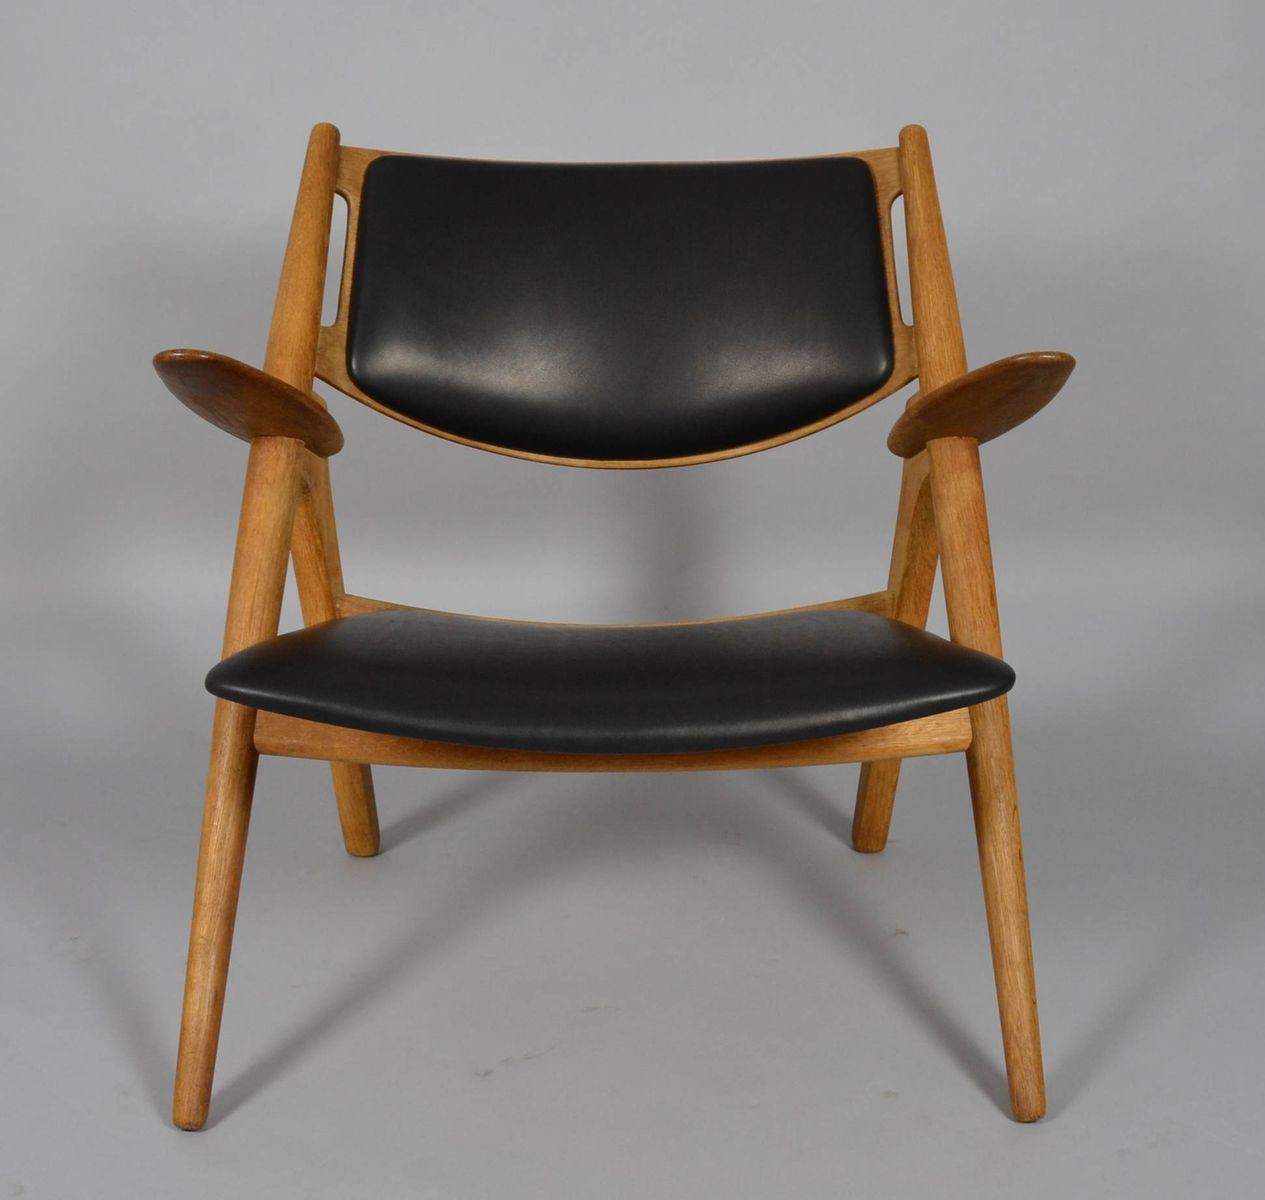 mid century ch28 sawbuck stuhl von hans j wegner f r carl hansen bei pamono kaufen. Black Bedroom Furniture Sets. Home Design Ideas